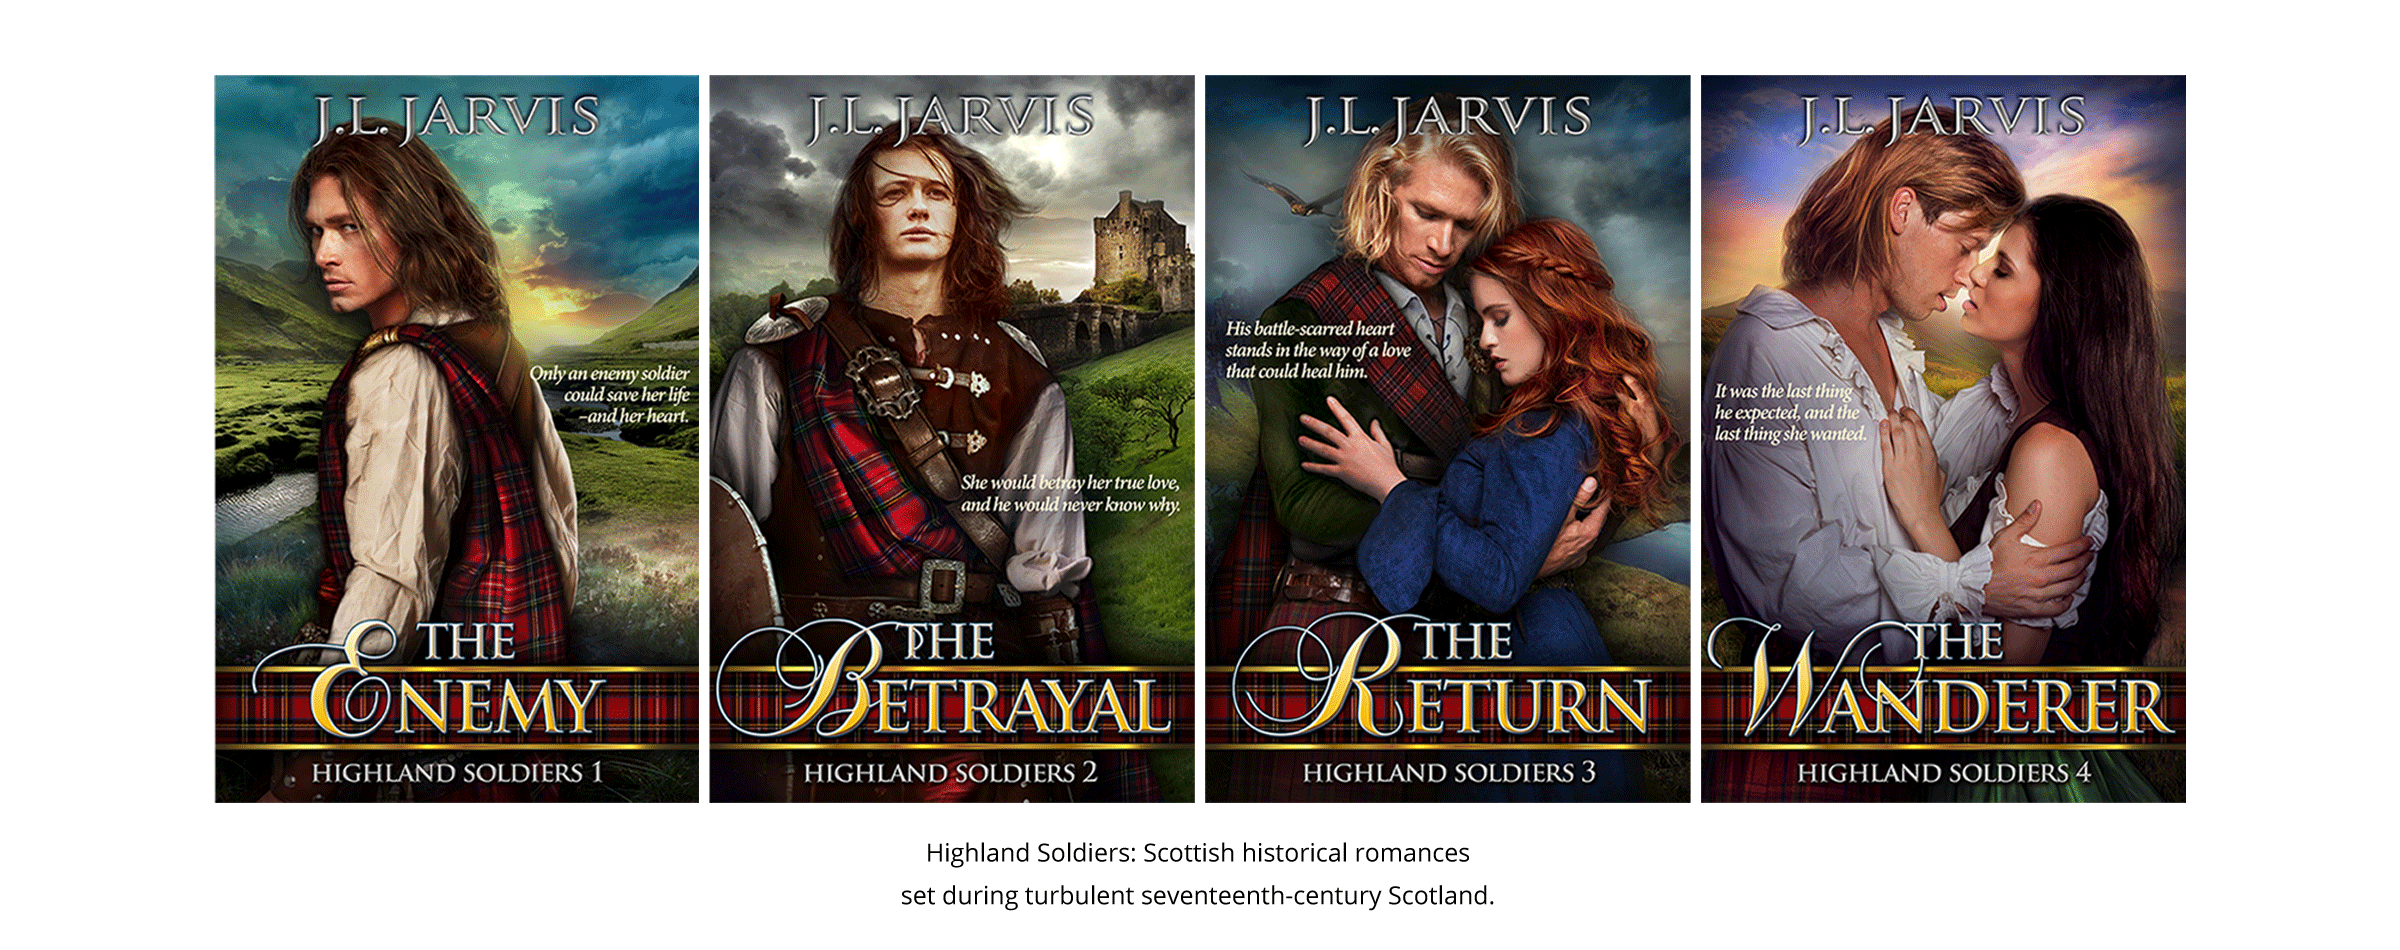 The Highland Soldiers Series